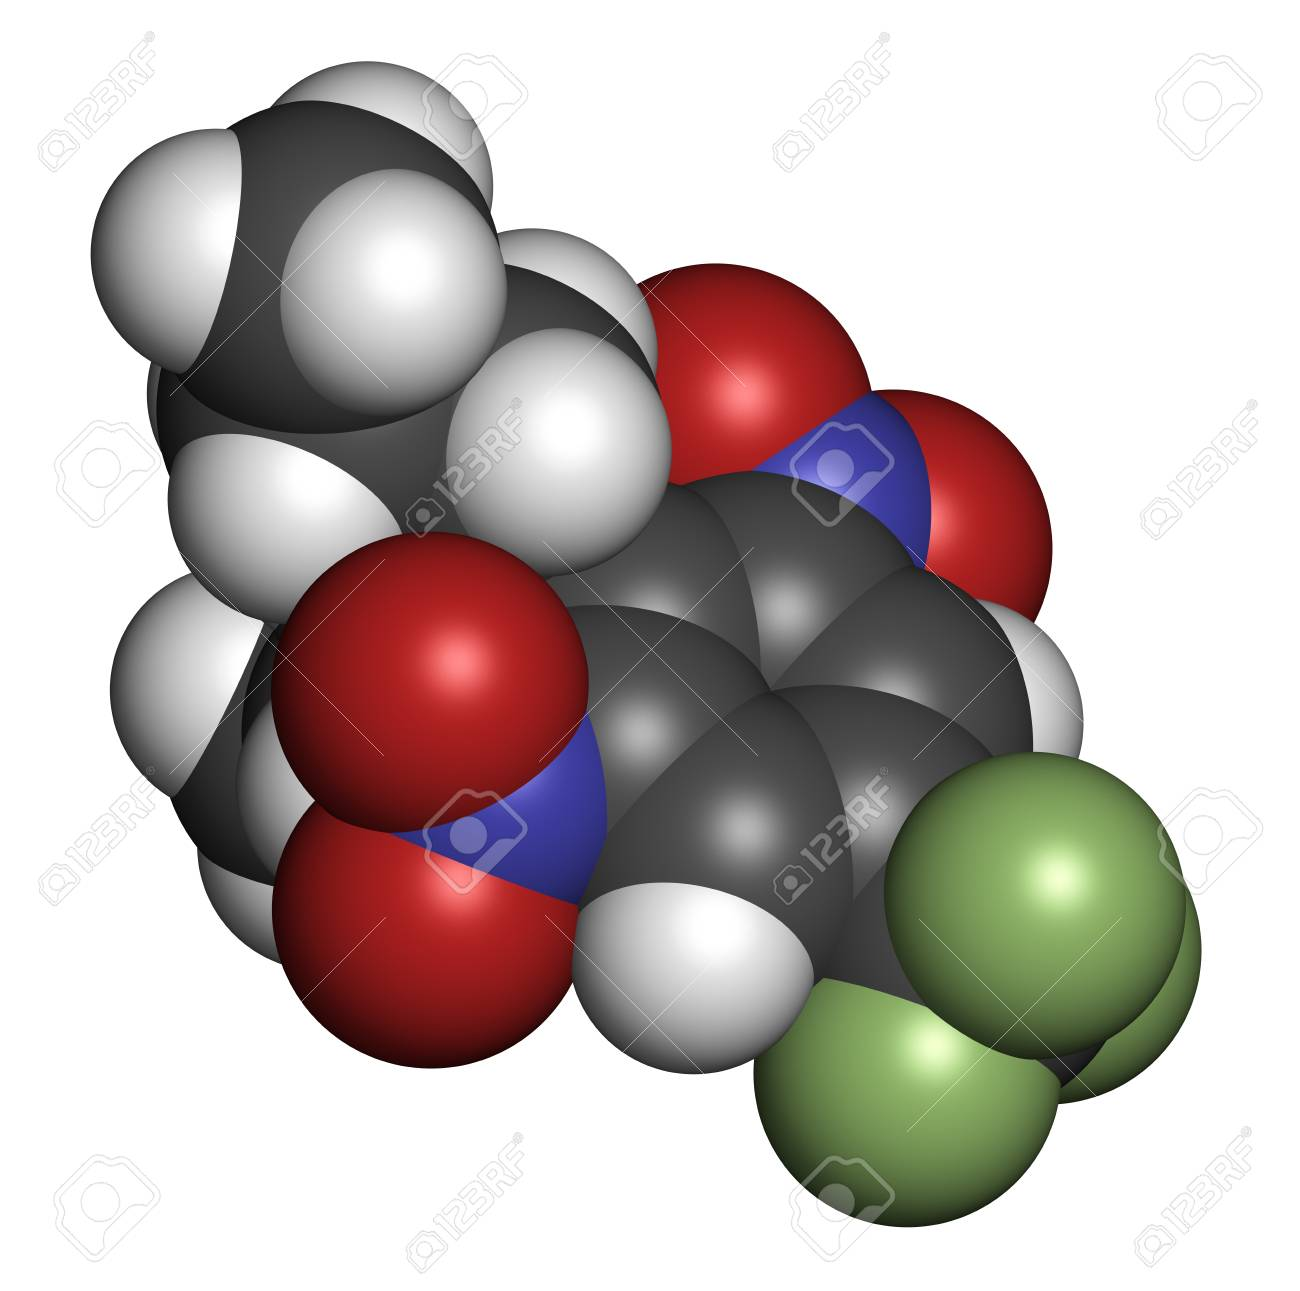 Trifluralin Herbicide Molecule 3d Rendering Atoms Are Represented Oxygen Atom Diagram Spheres Represent Carbon As With Conventional Color Coding Hydrogen White Grey Nitrogen Blue Red